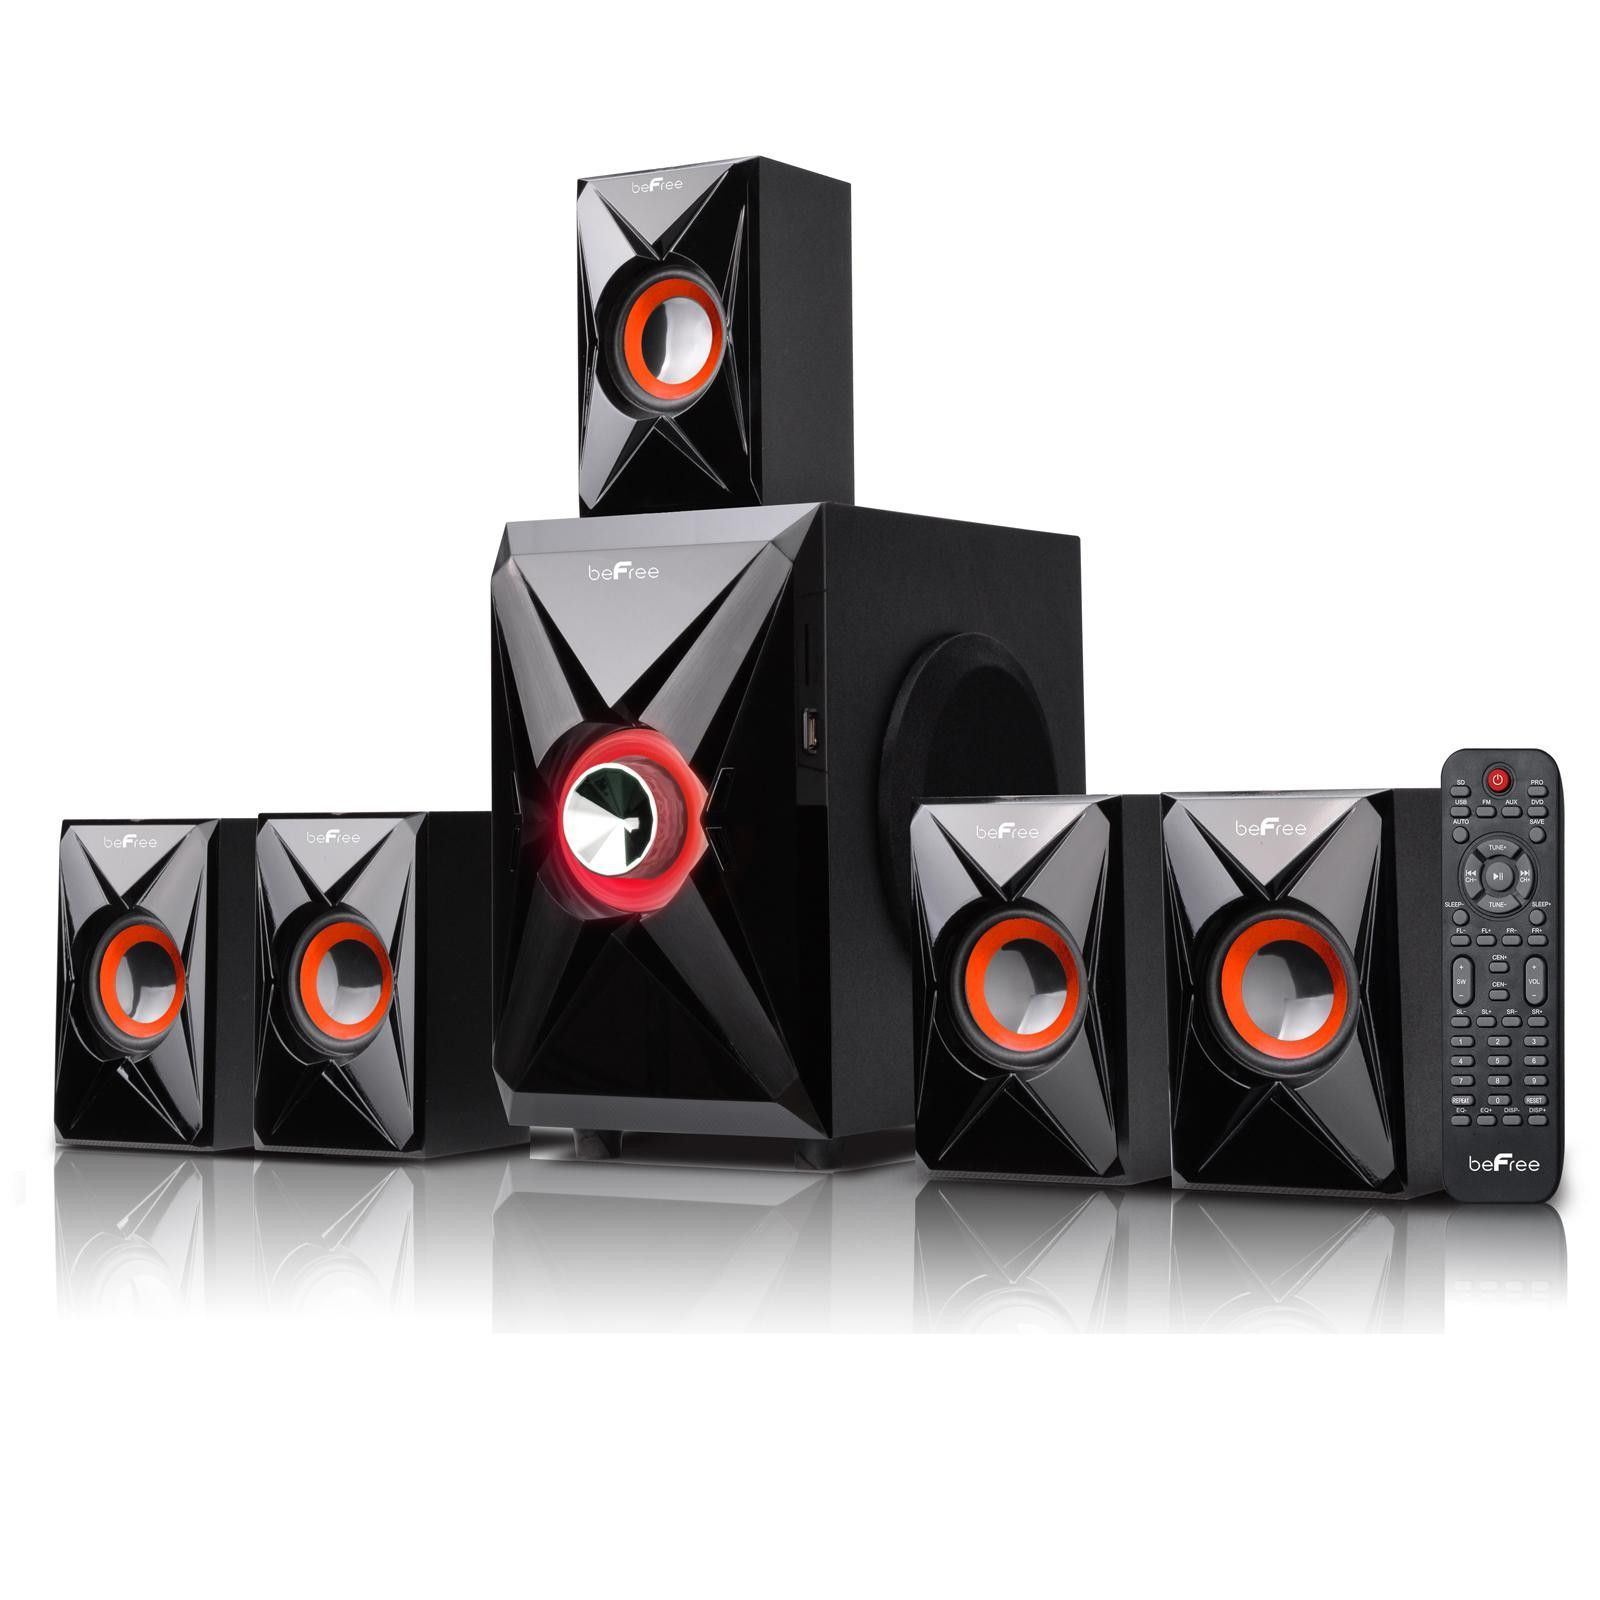 4e0dcaa0f8f564c20867f77ac828e9b9 Top Result 50 New Loudest Portable Speakers